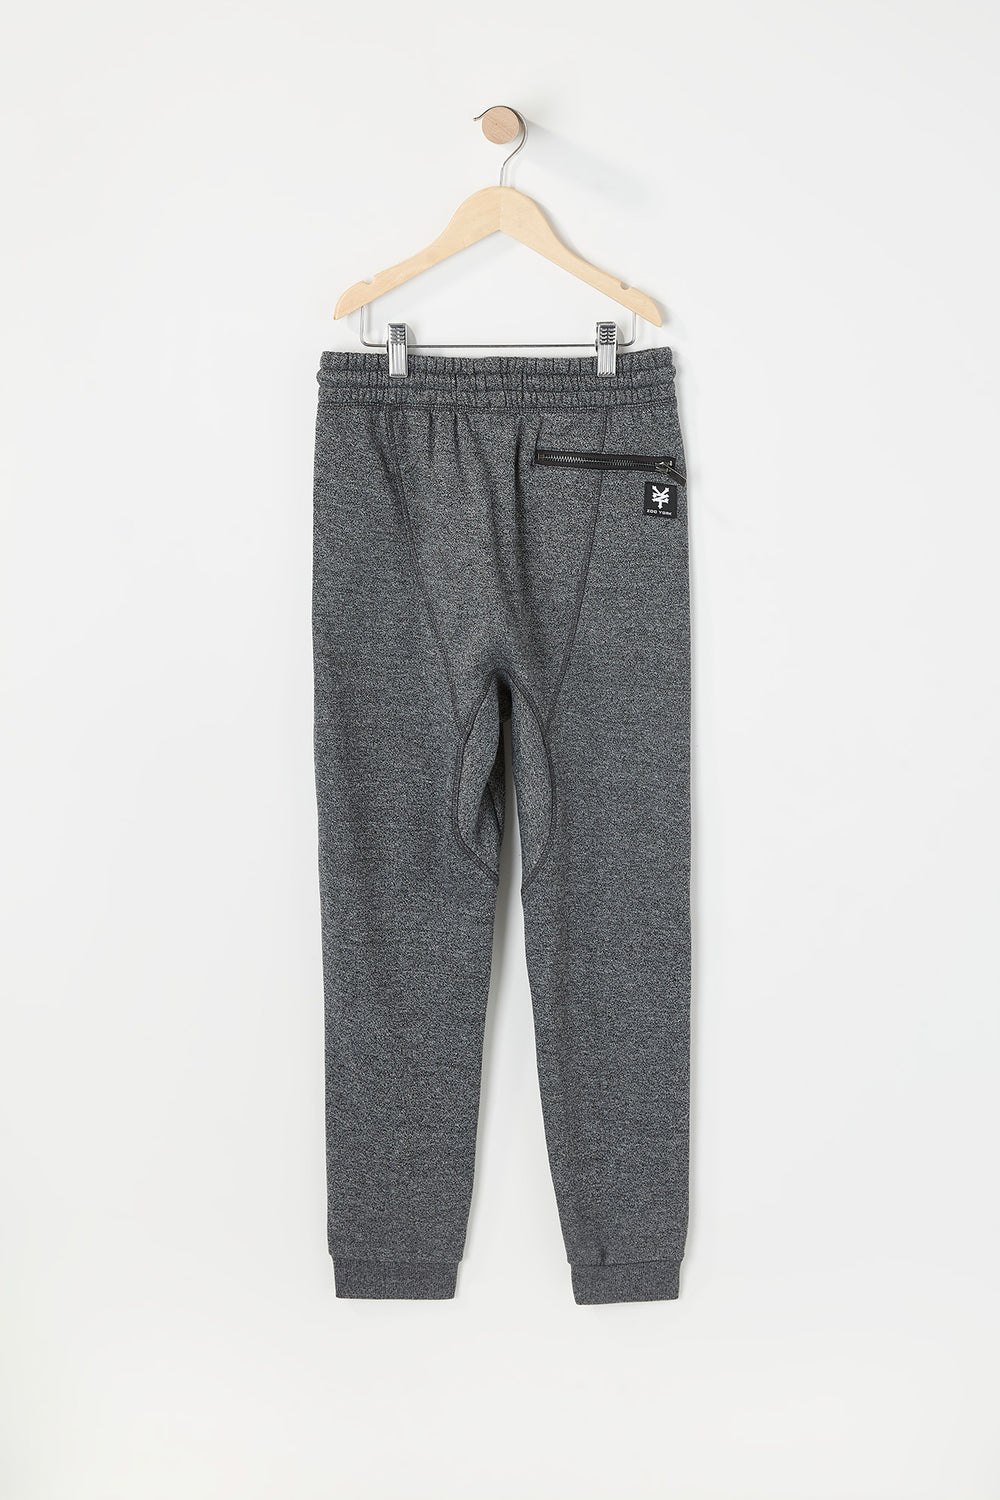 Jogger Logo Zoo York Junior Gris Noir